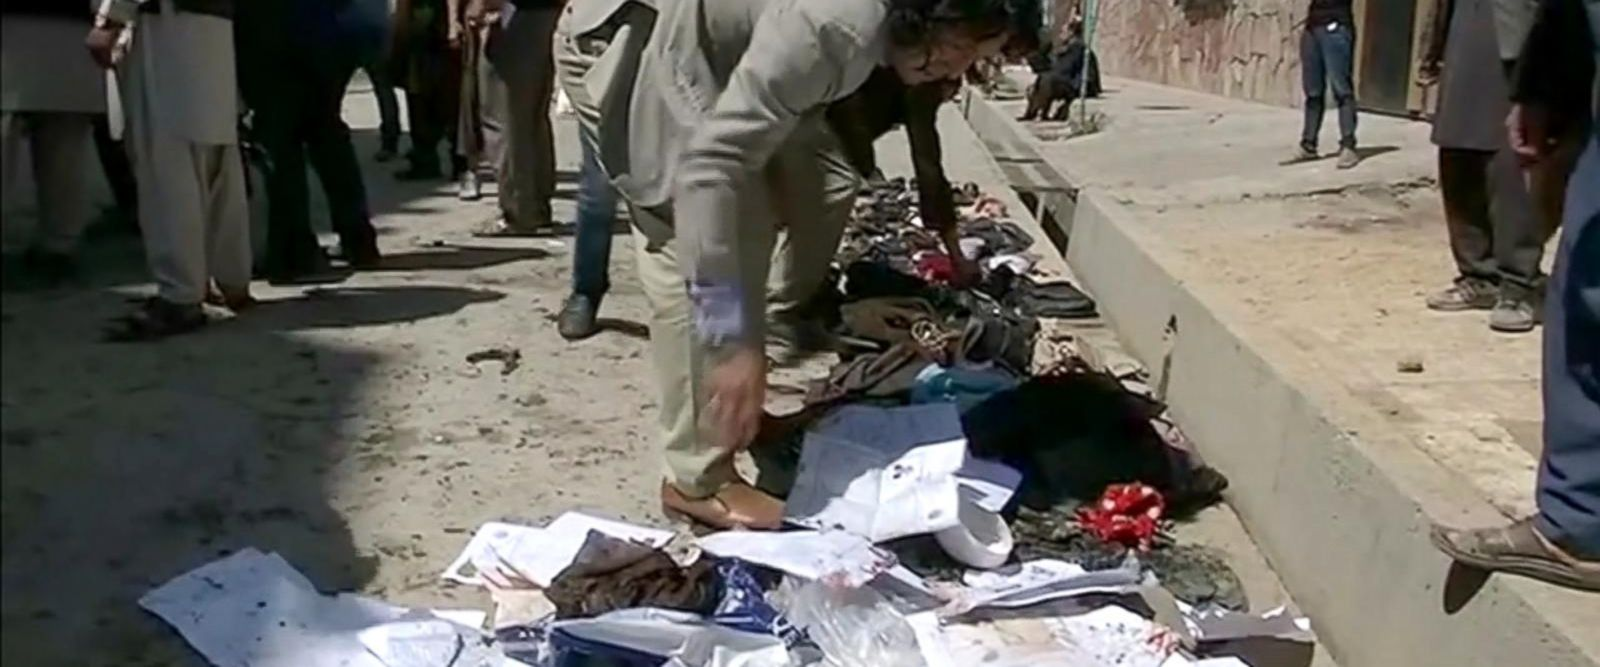 VIDEO: Suicide bomber in Kabul, Afghanistan, claims the lives of more than 50 people